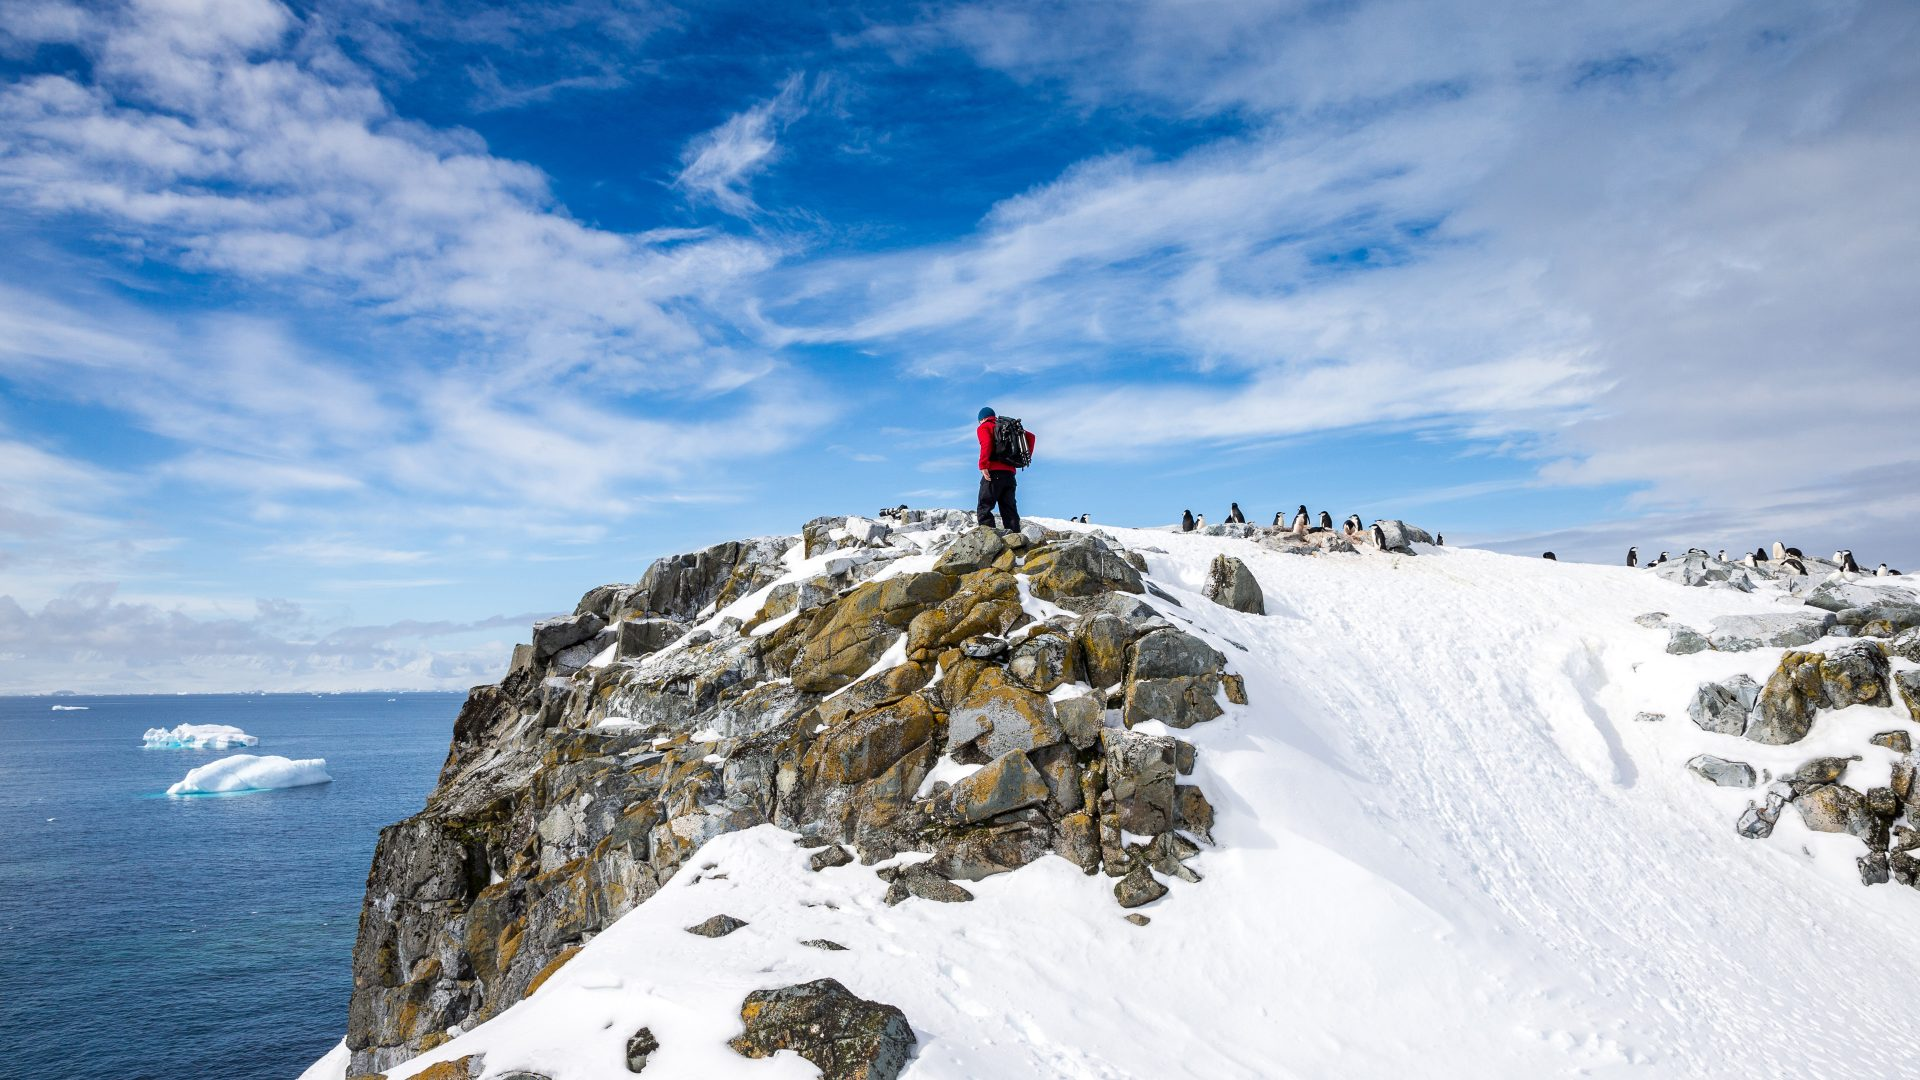 A tourist looks out over the water from a snowy peak in Antarctica.